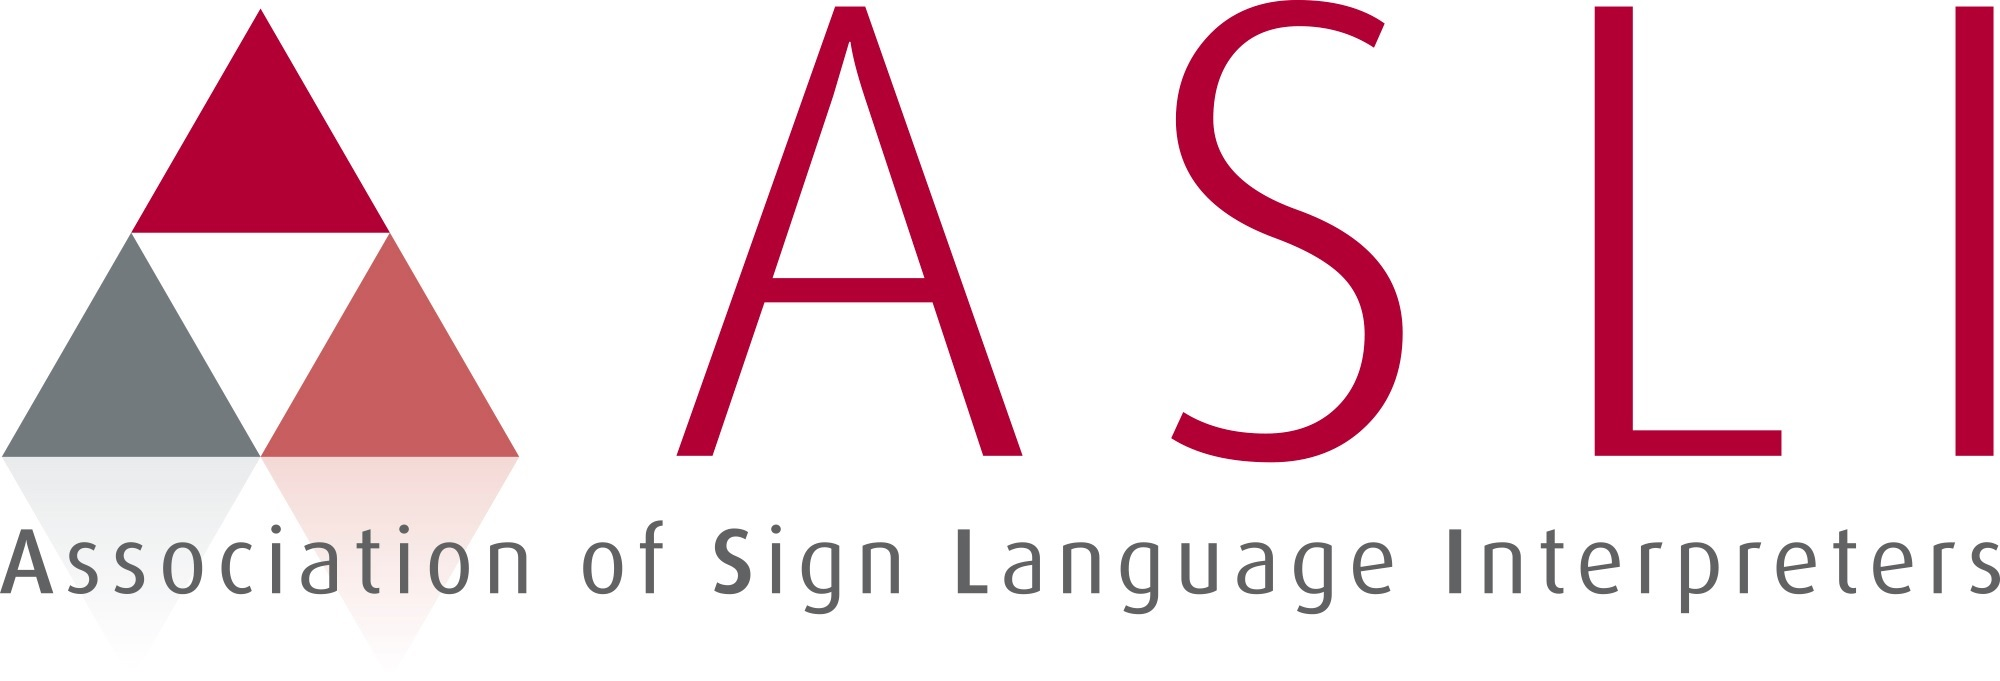 Association of Sign Language Interpreters